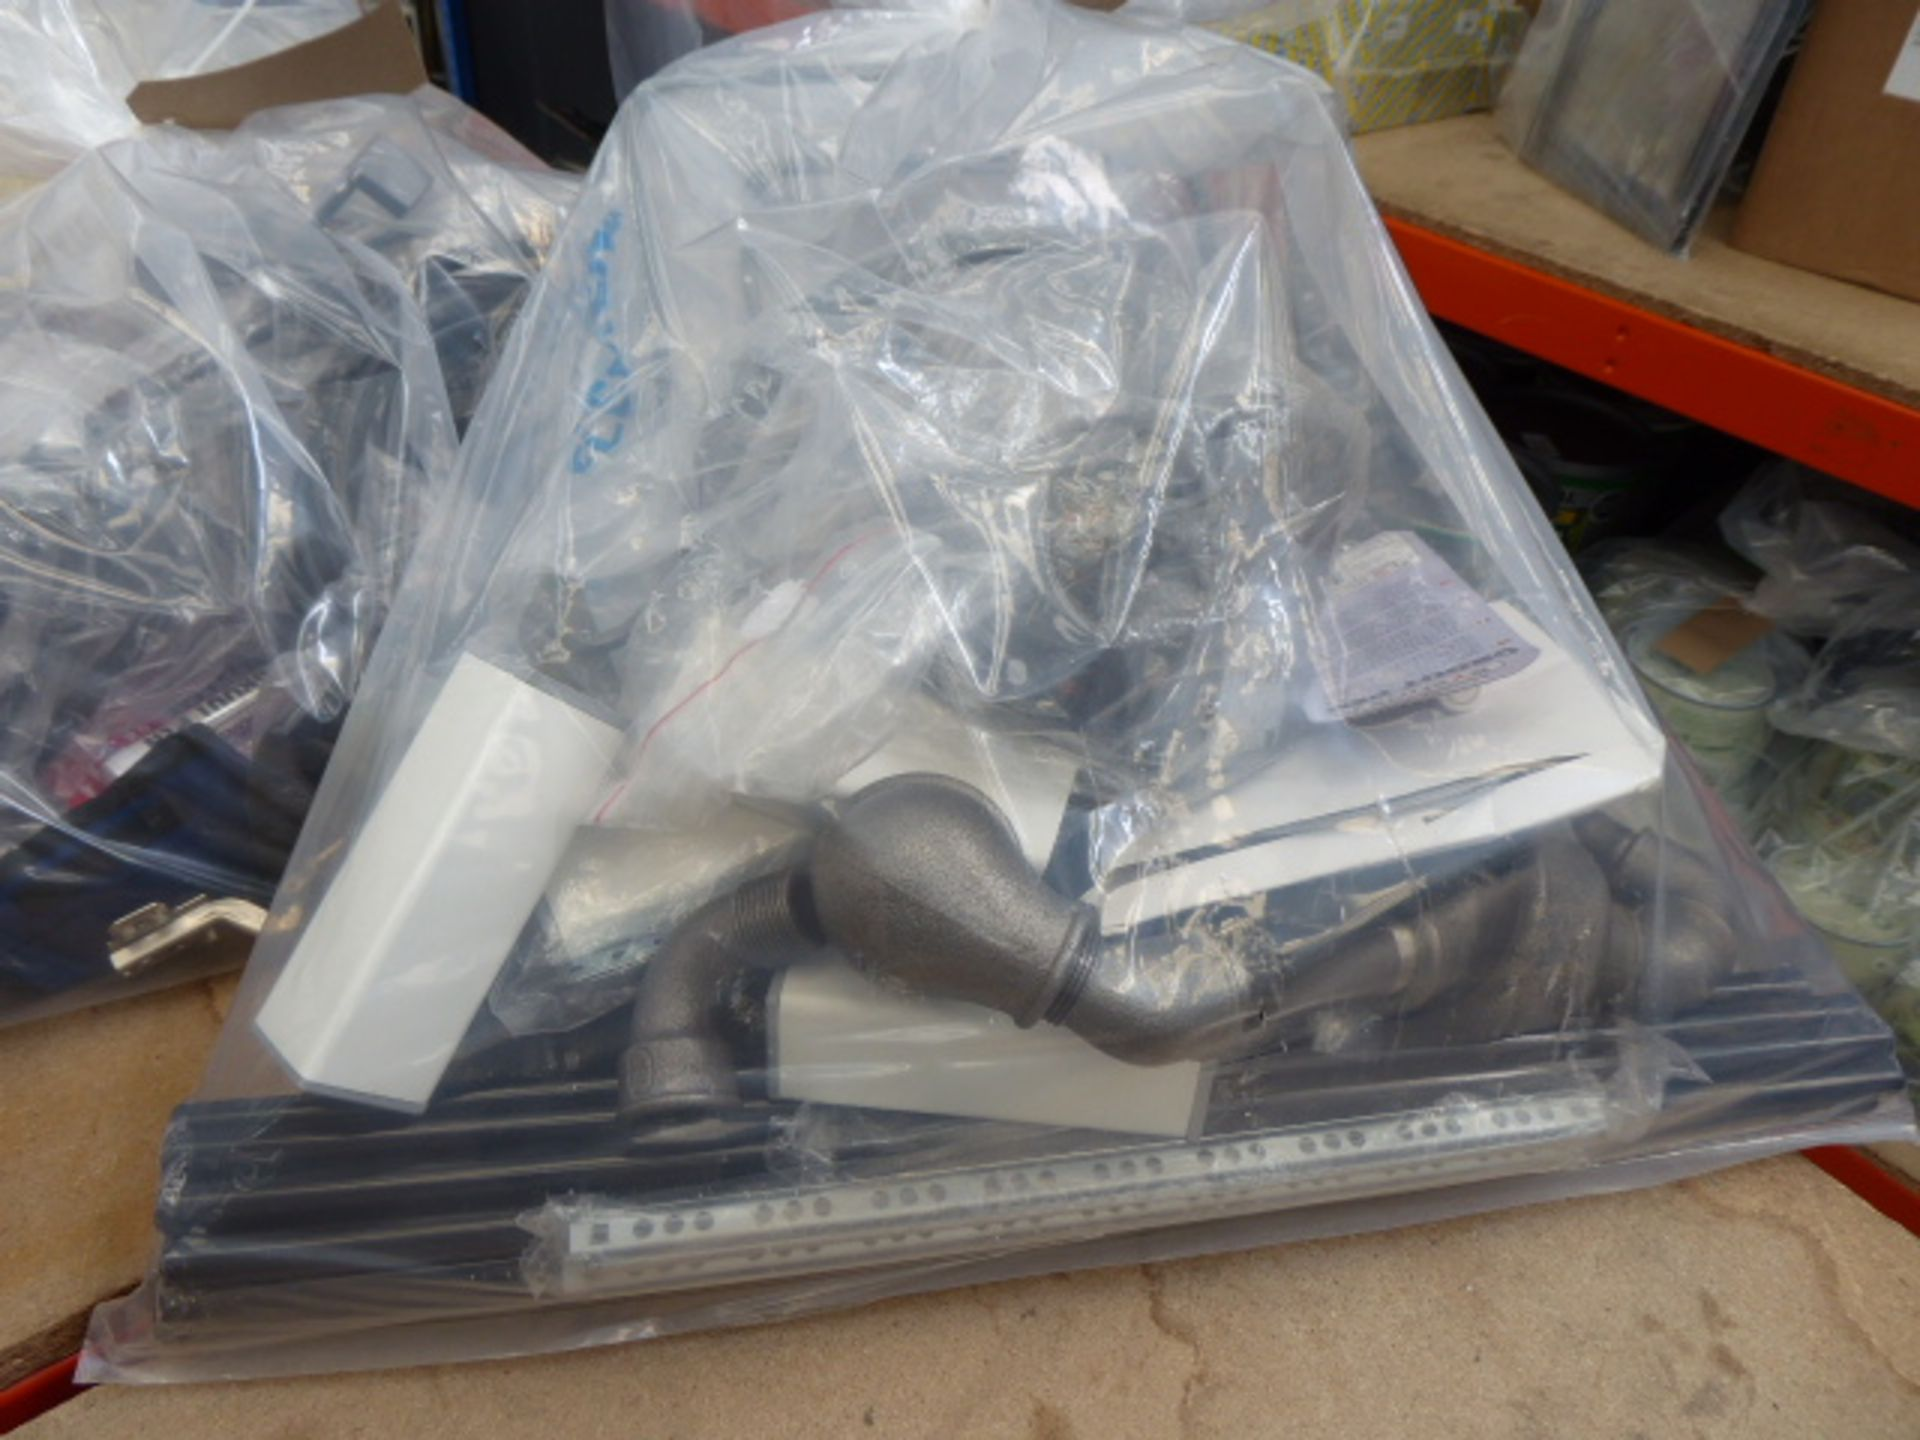 Lot 4859 - Bag containing cooker elements, Meccano parts, piping, boiler parts, furniture feet, track rod